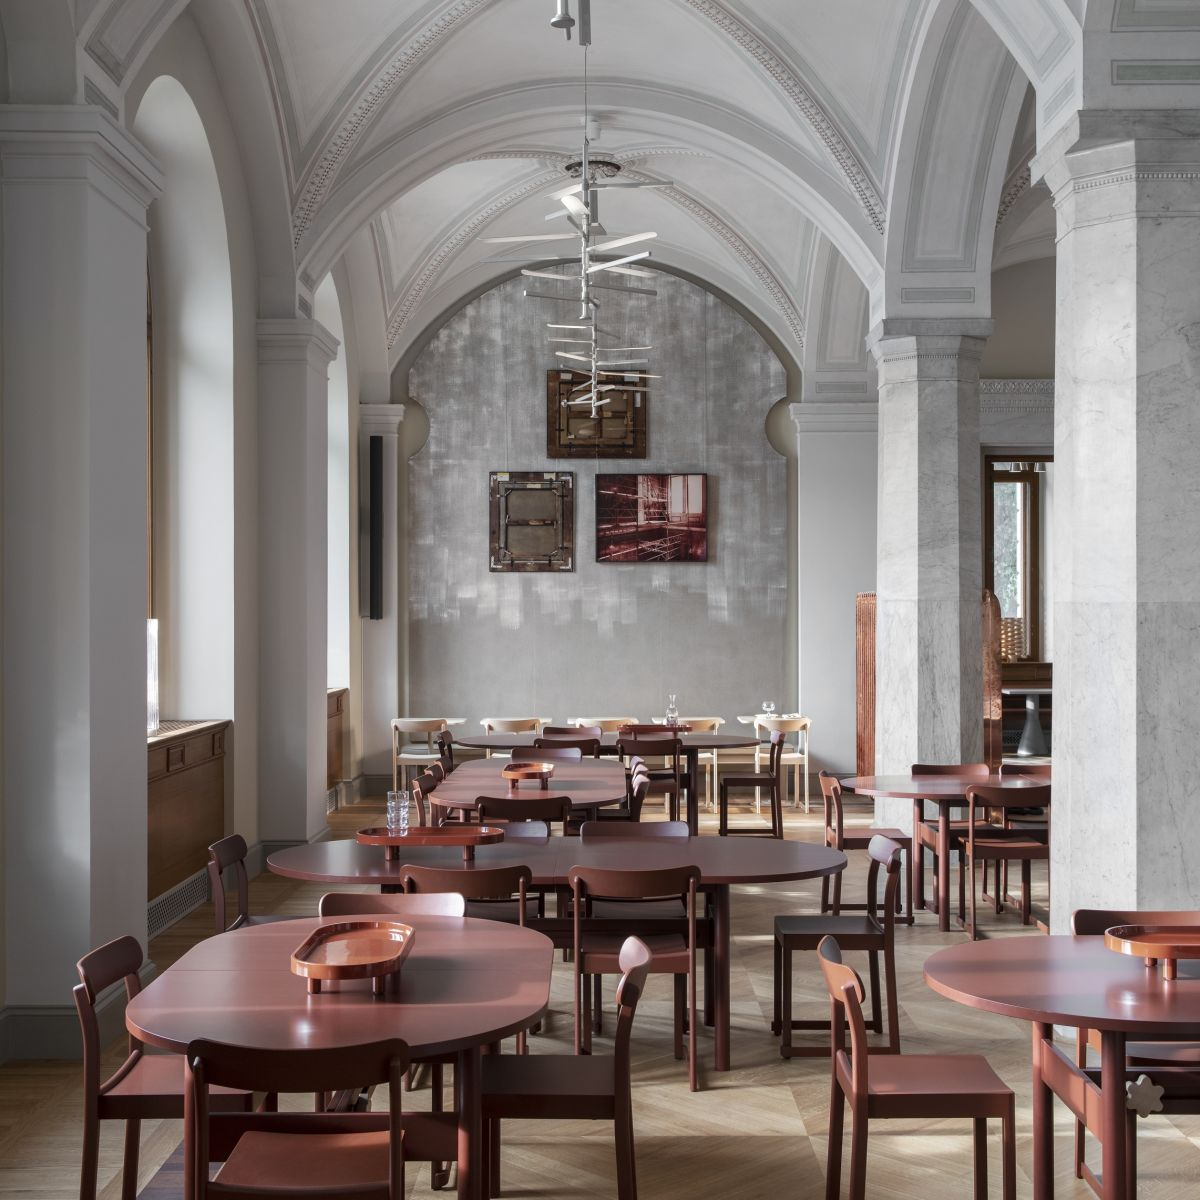 Artek Atelier Chair Nationalmuseum 1Restaurant Photo Erik Lefvander